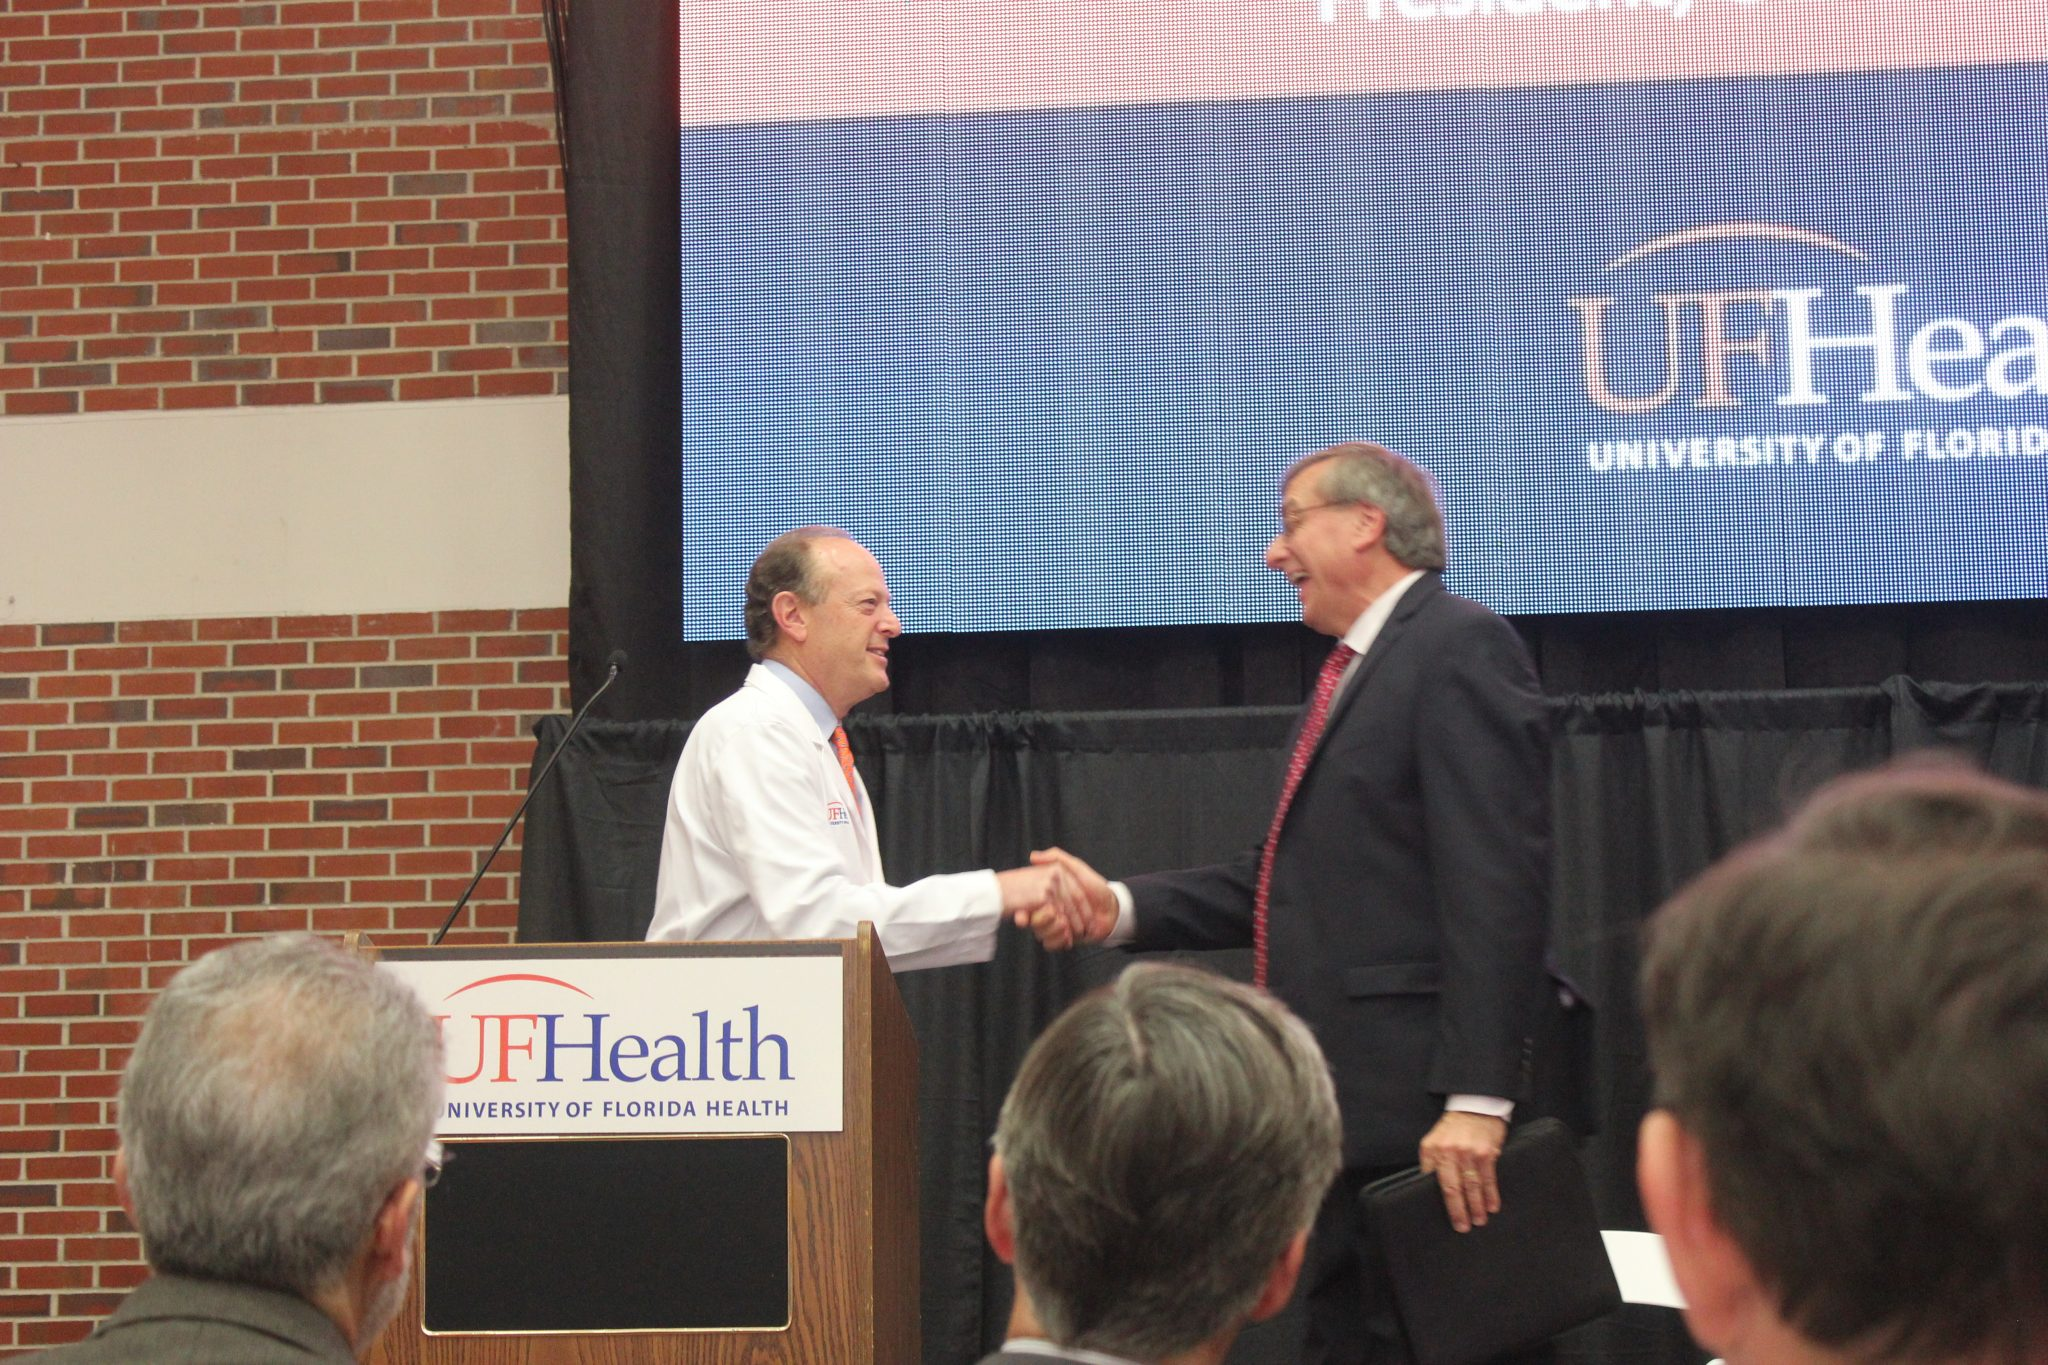 UF Health Rolls out New Five Year Strategic Plan, The Power of Together